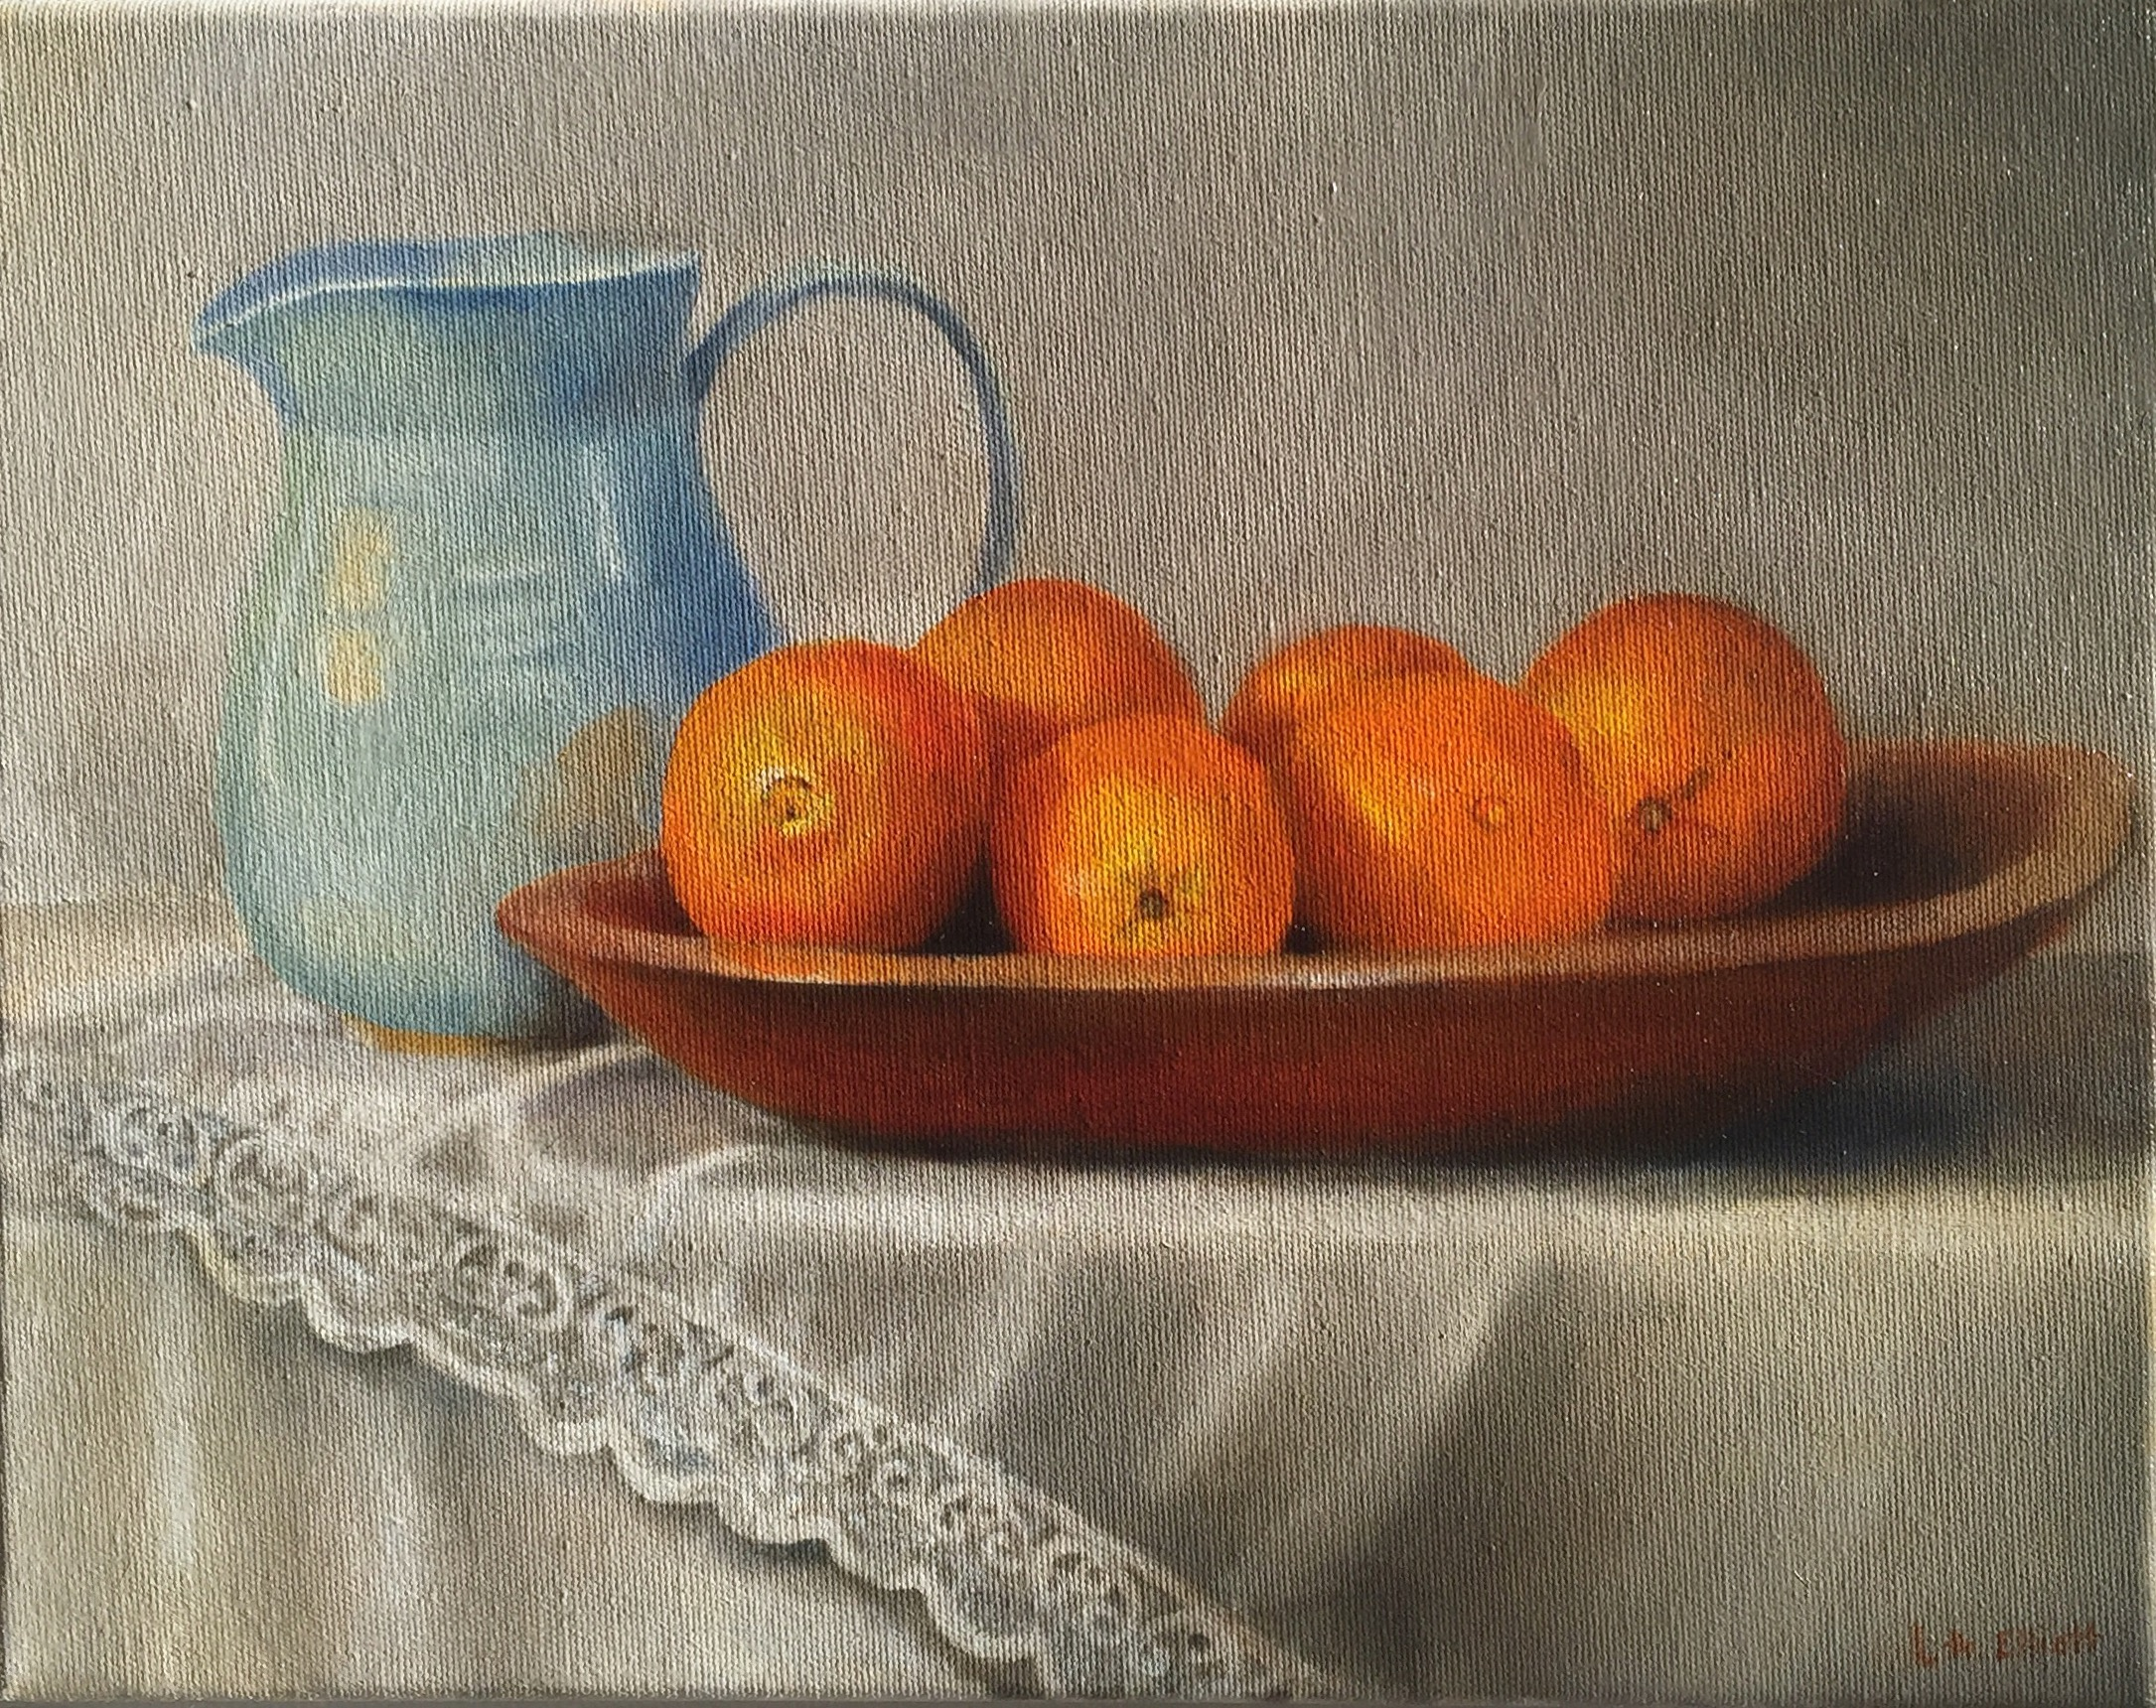 'Oranges' oil on canvas 11x14